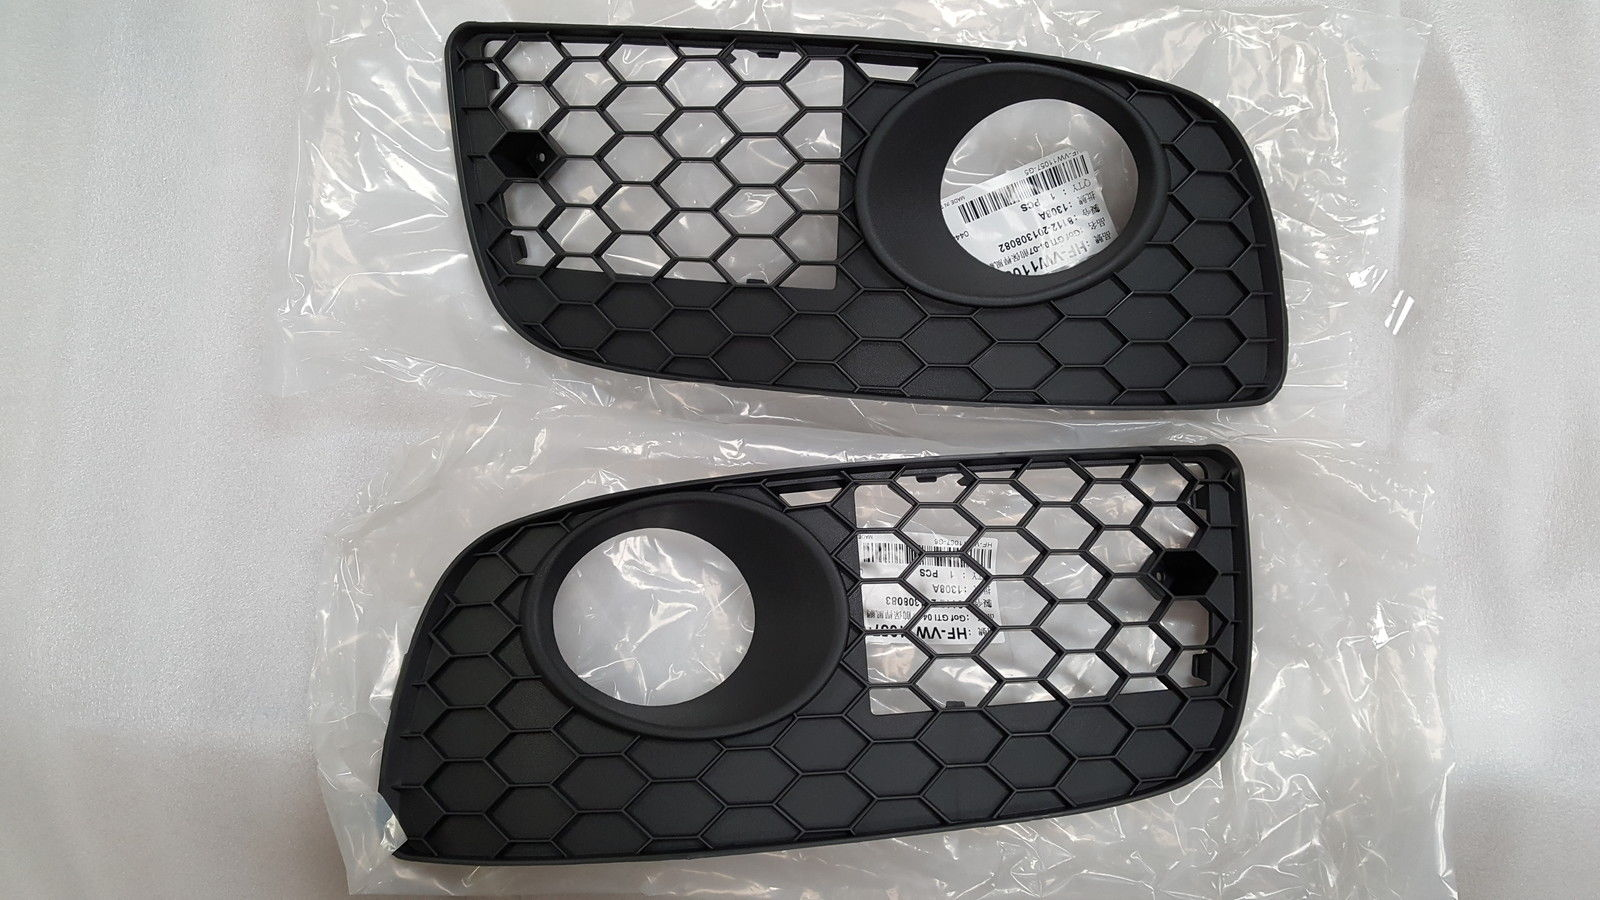 VW GOLF 5 GTI BRAND NEW FOGLIGHTS GRILLES FOR SALE PRICE:R195 each